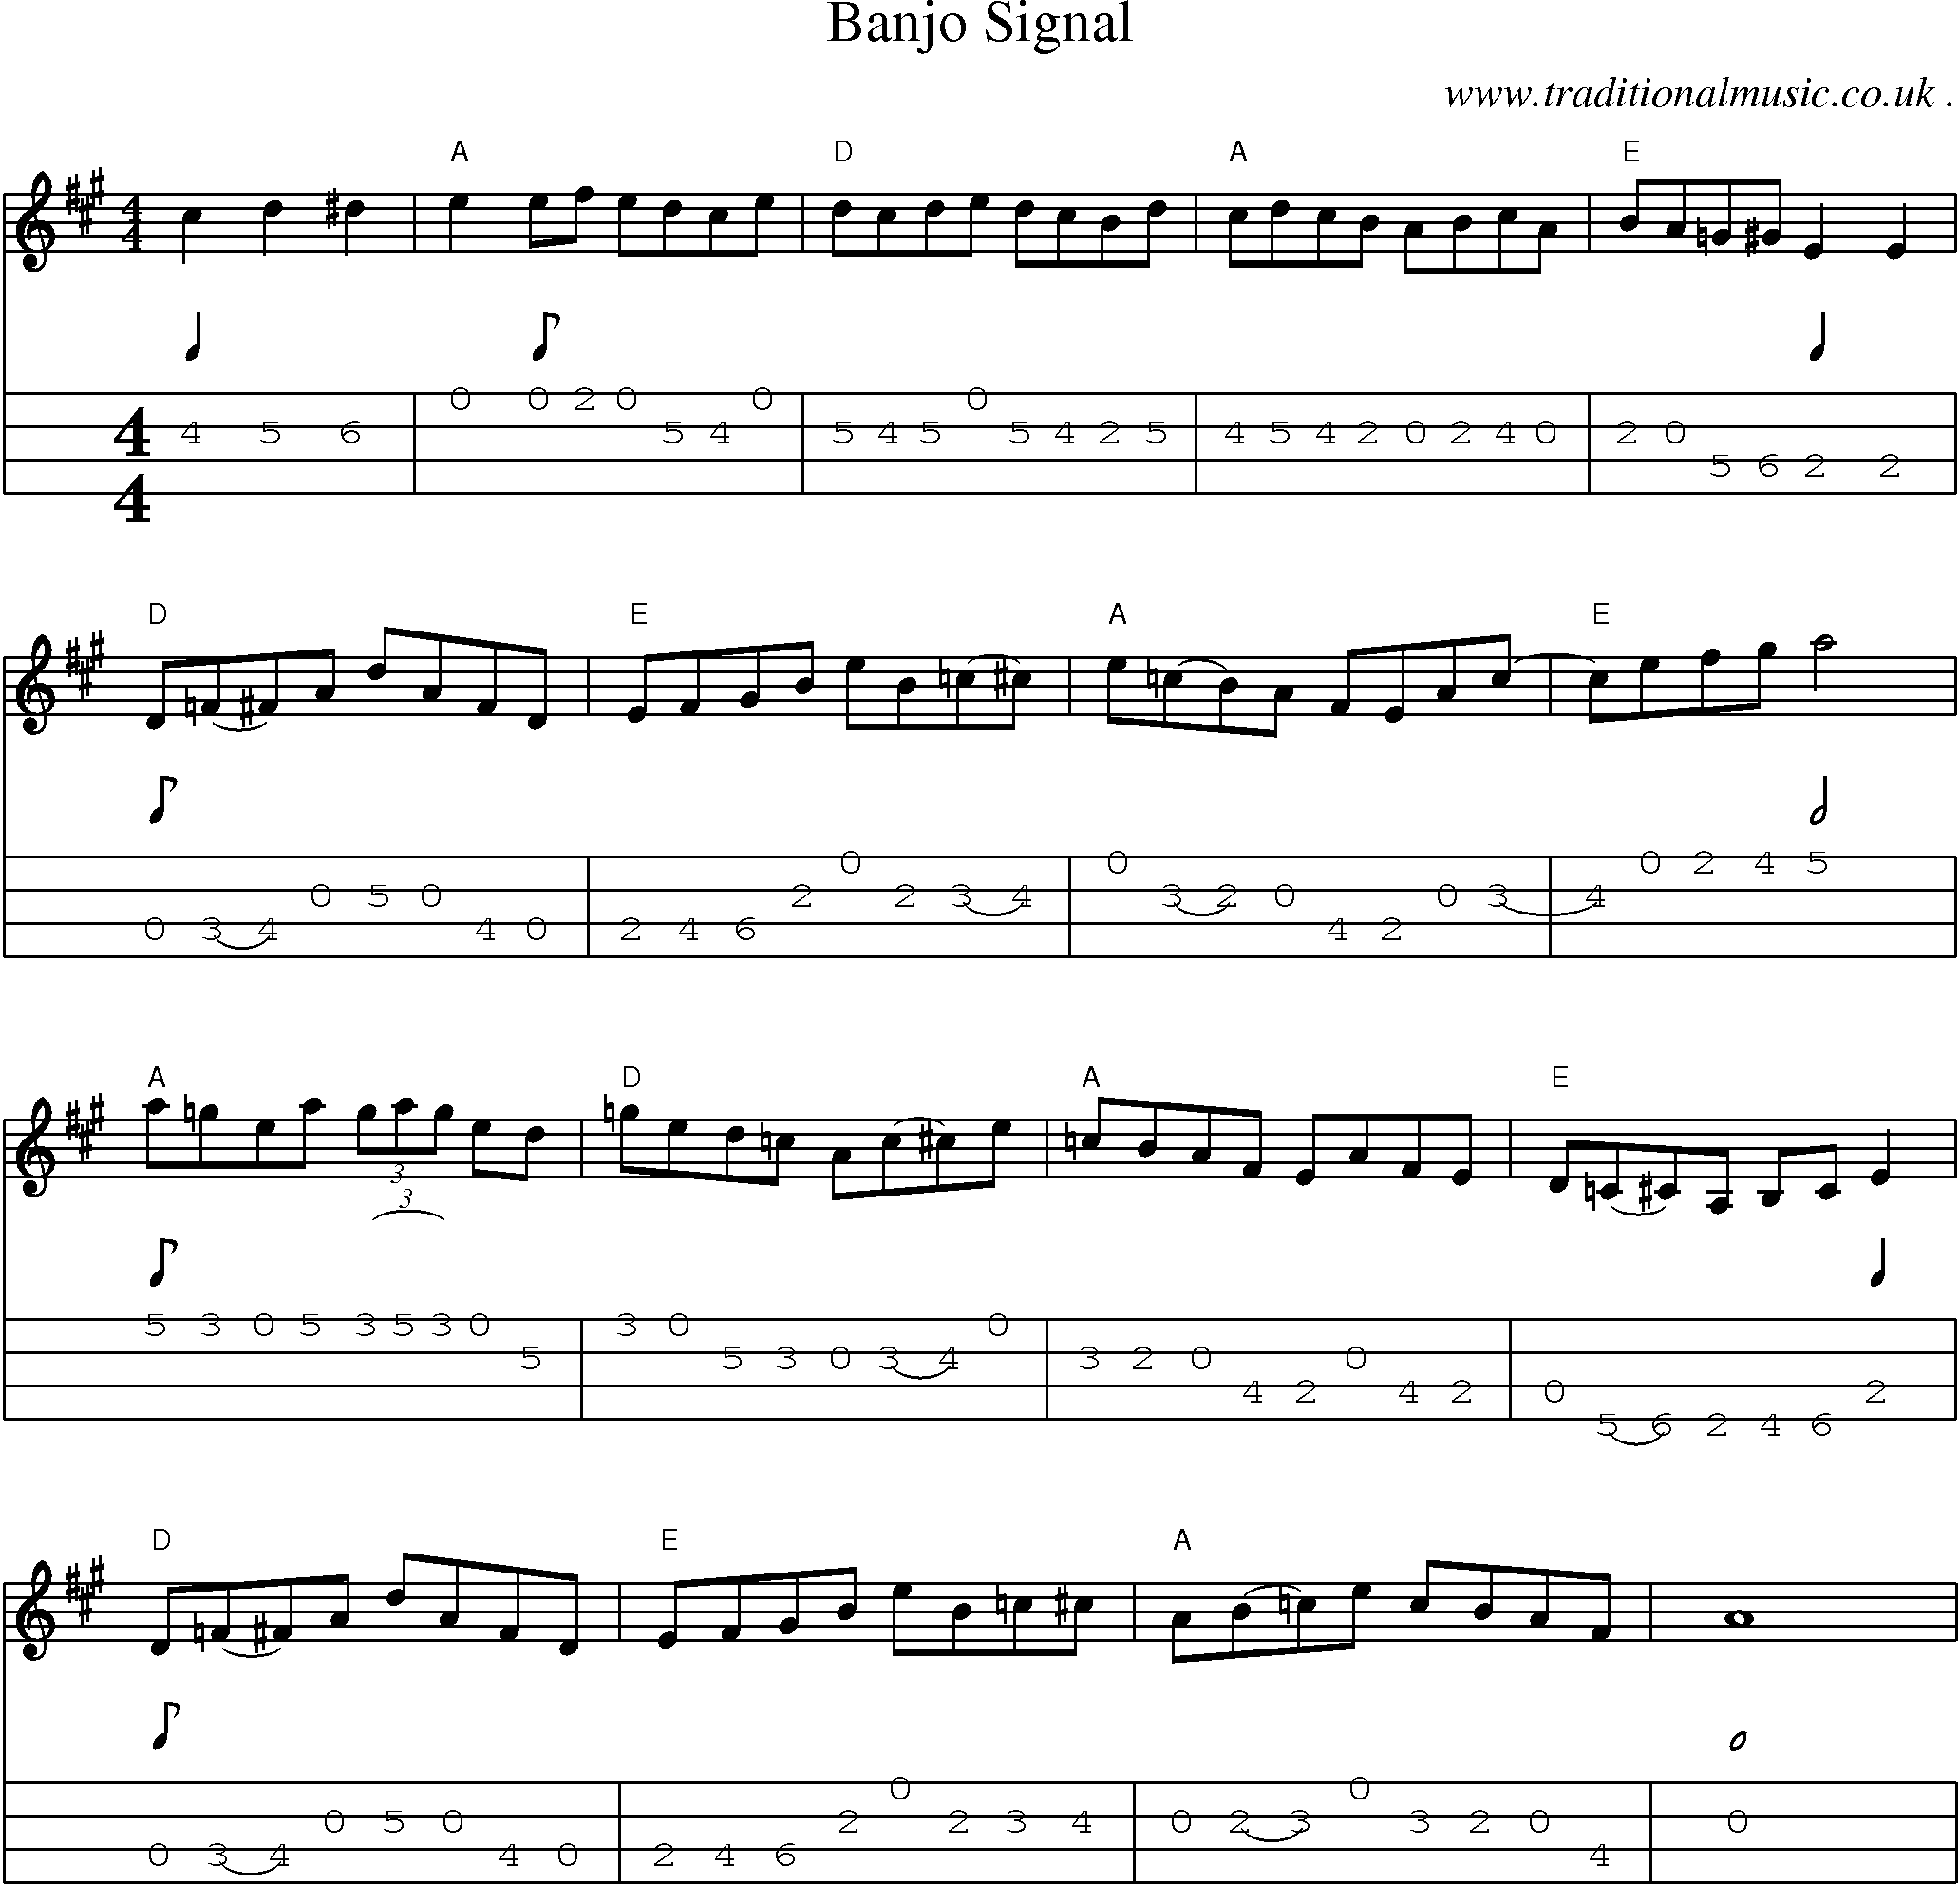 American Old-time music, Scores and Tabs for Mandolin - Banjo Signal